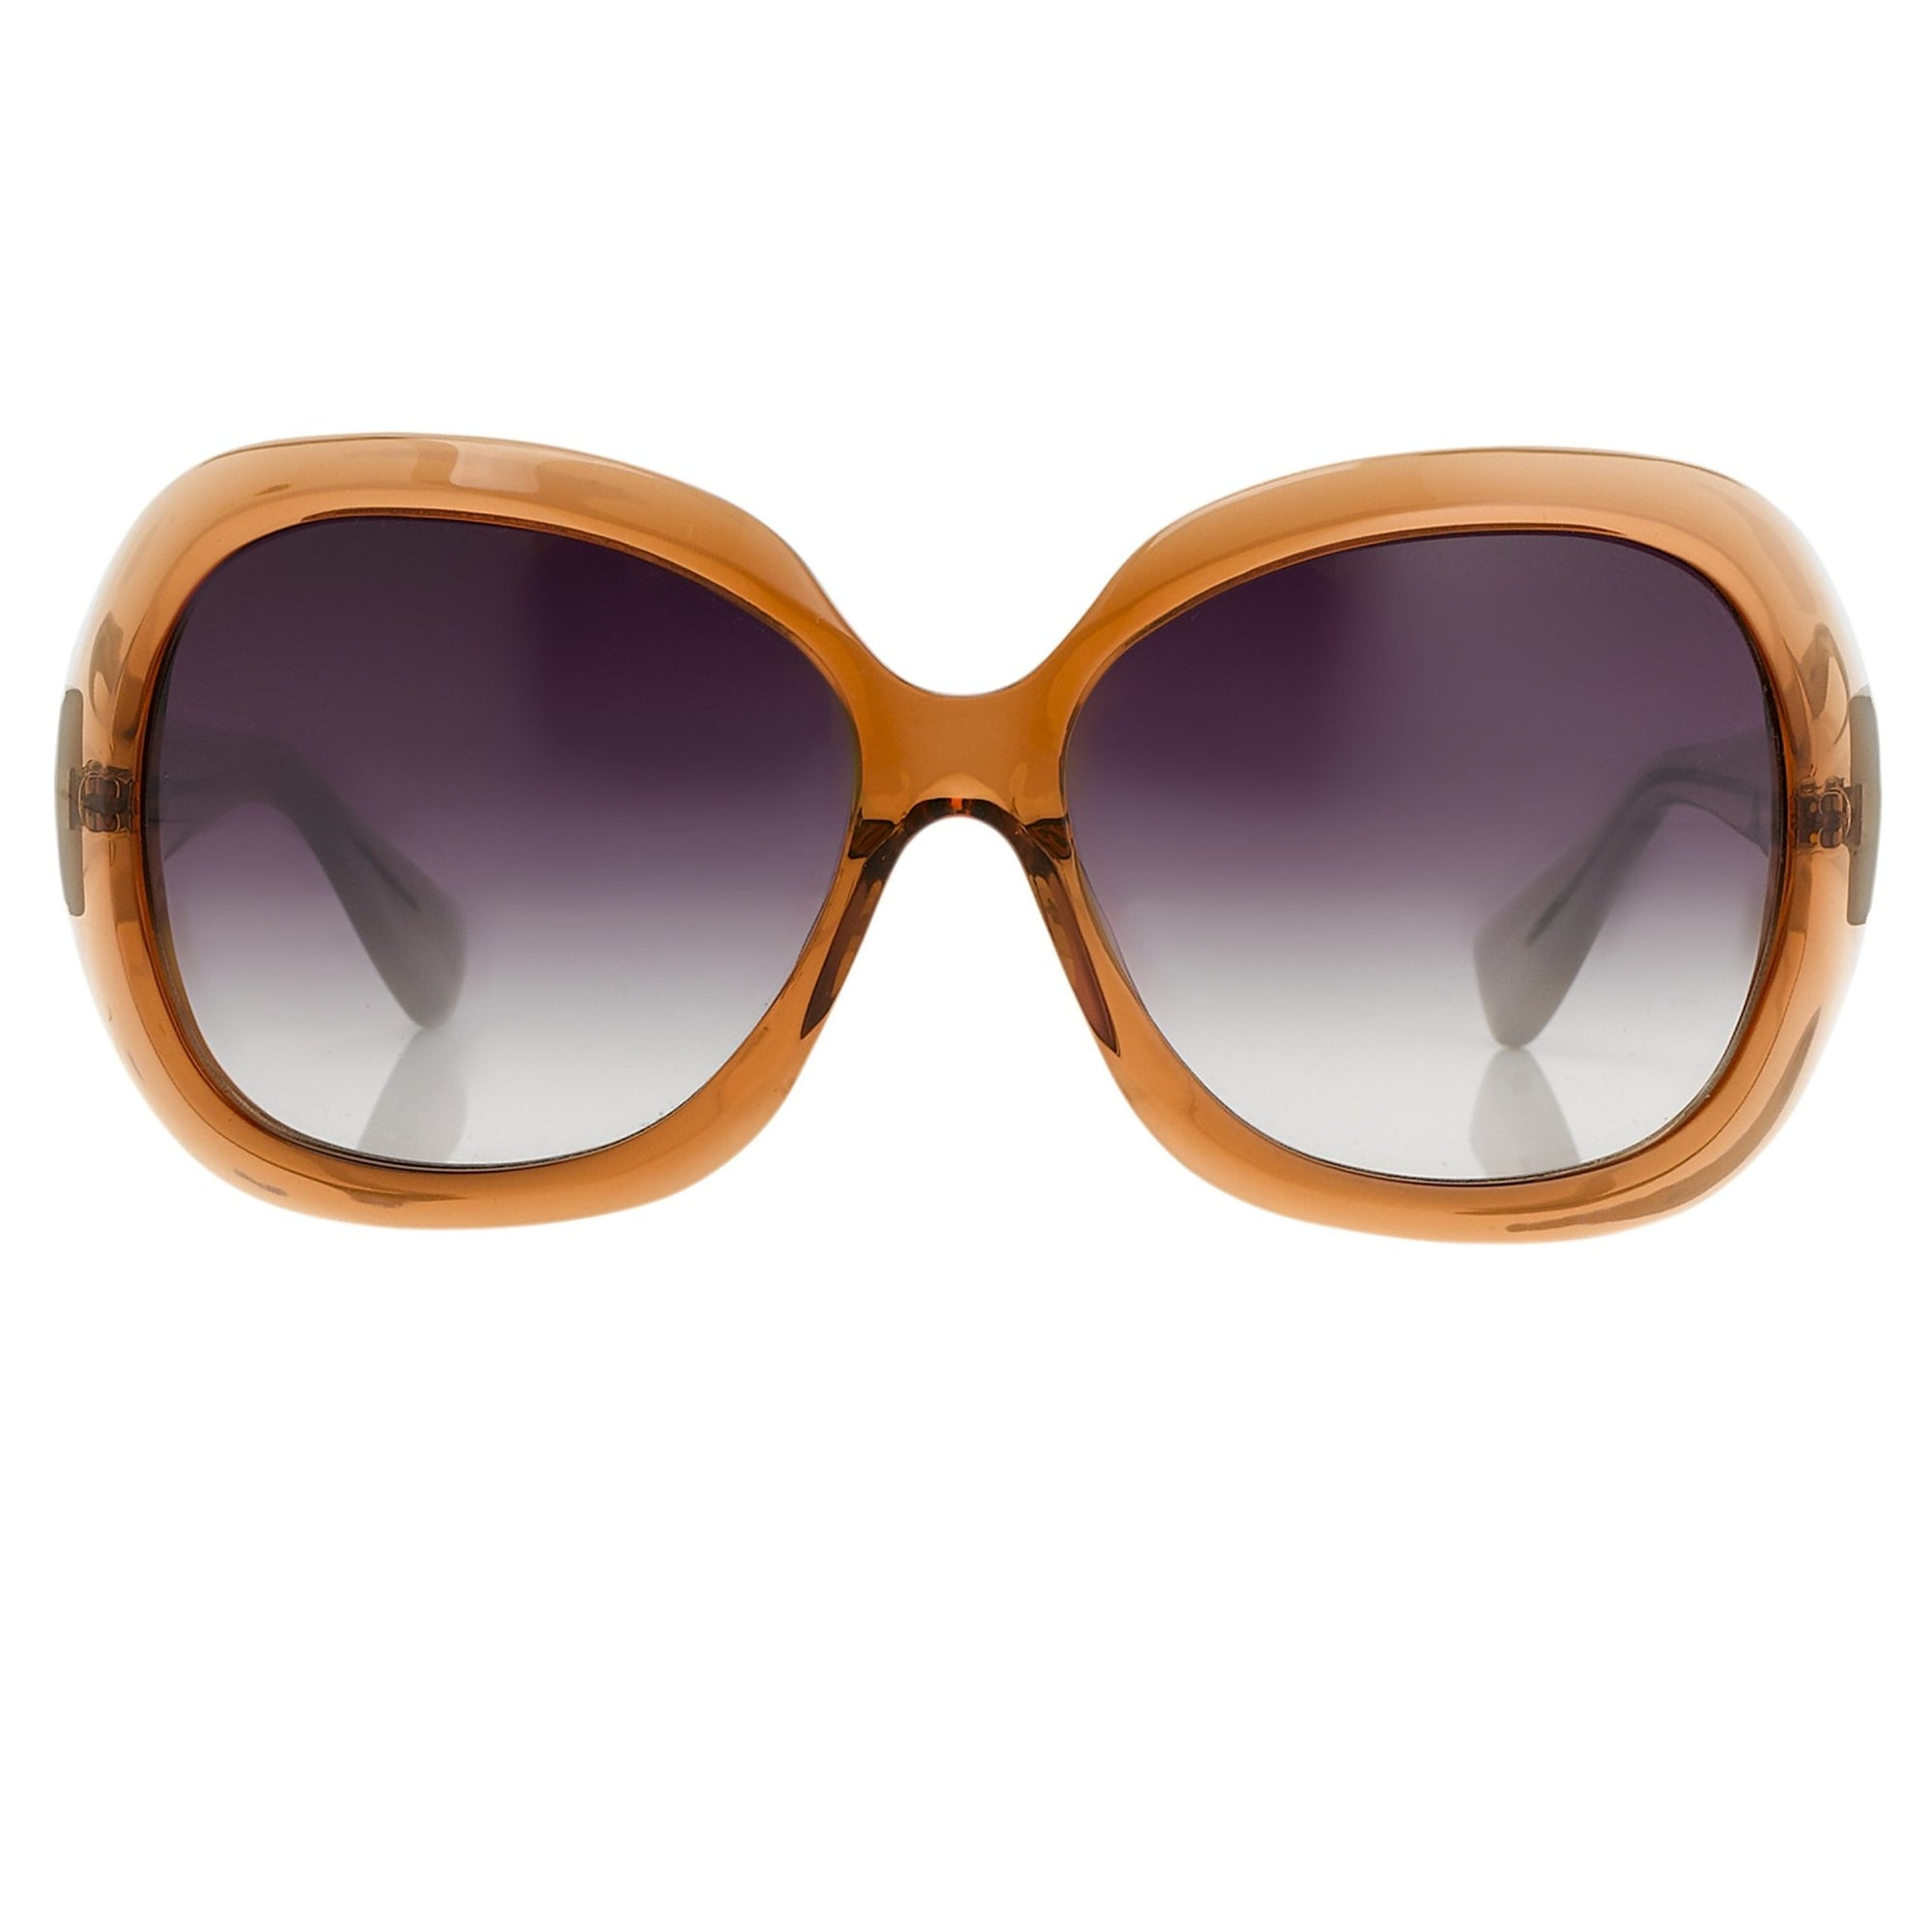 Rue De Mail Sunglasses Oversized Translucent Terracotta with Grey Graduated Lenses RDM2C3SUN - Watches & Crystals